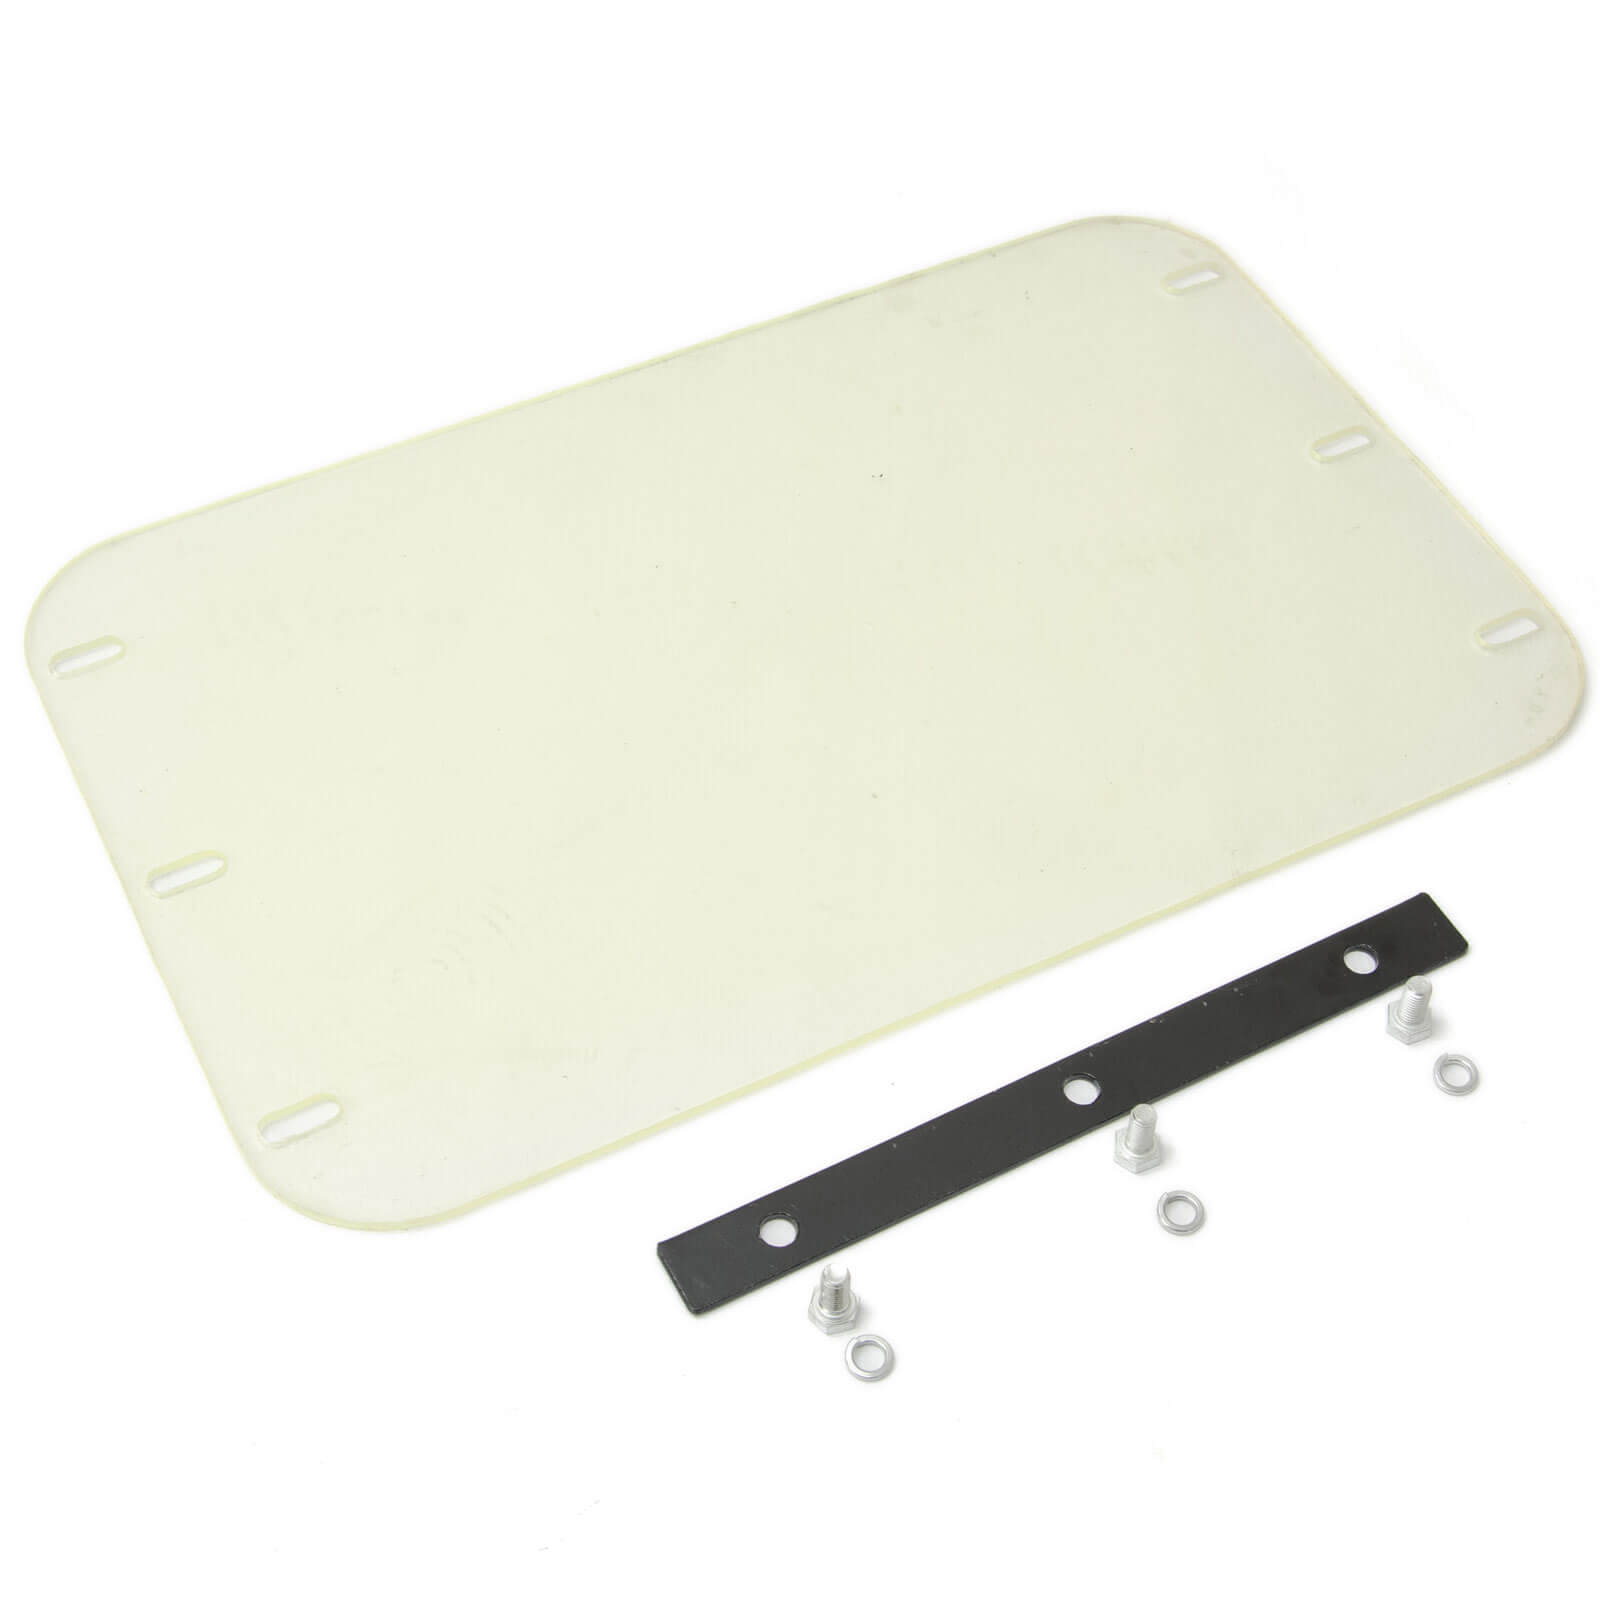 Image of Handy Paving Pad for THLC29142 Compactor Plates